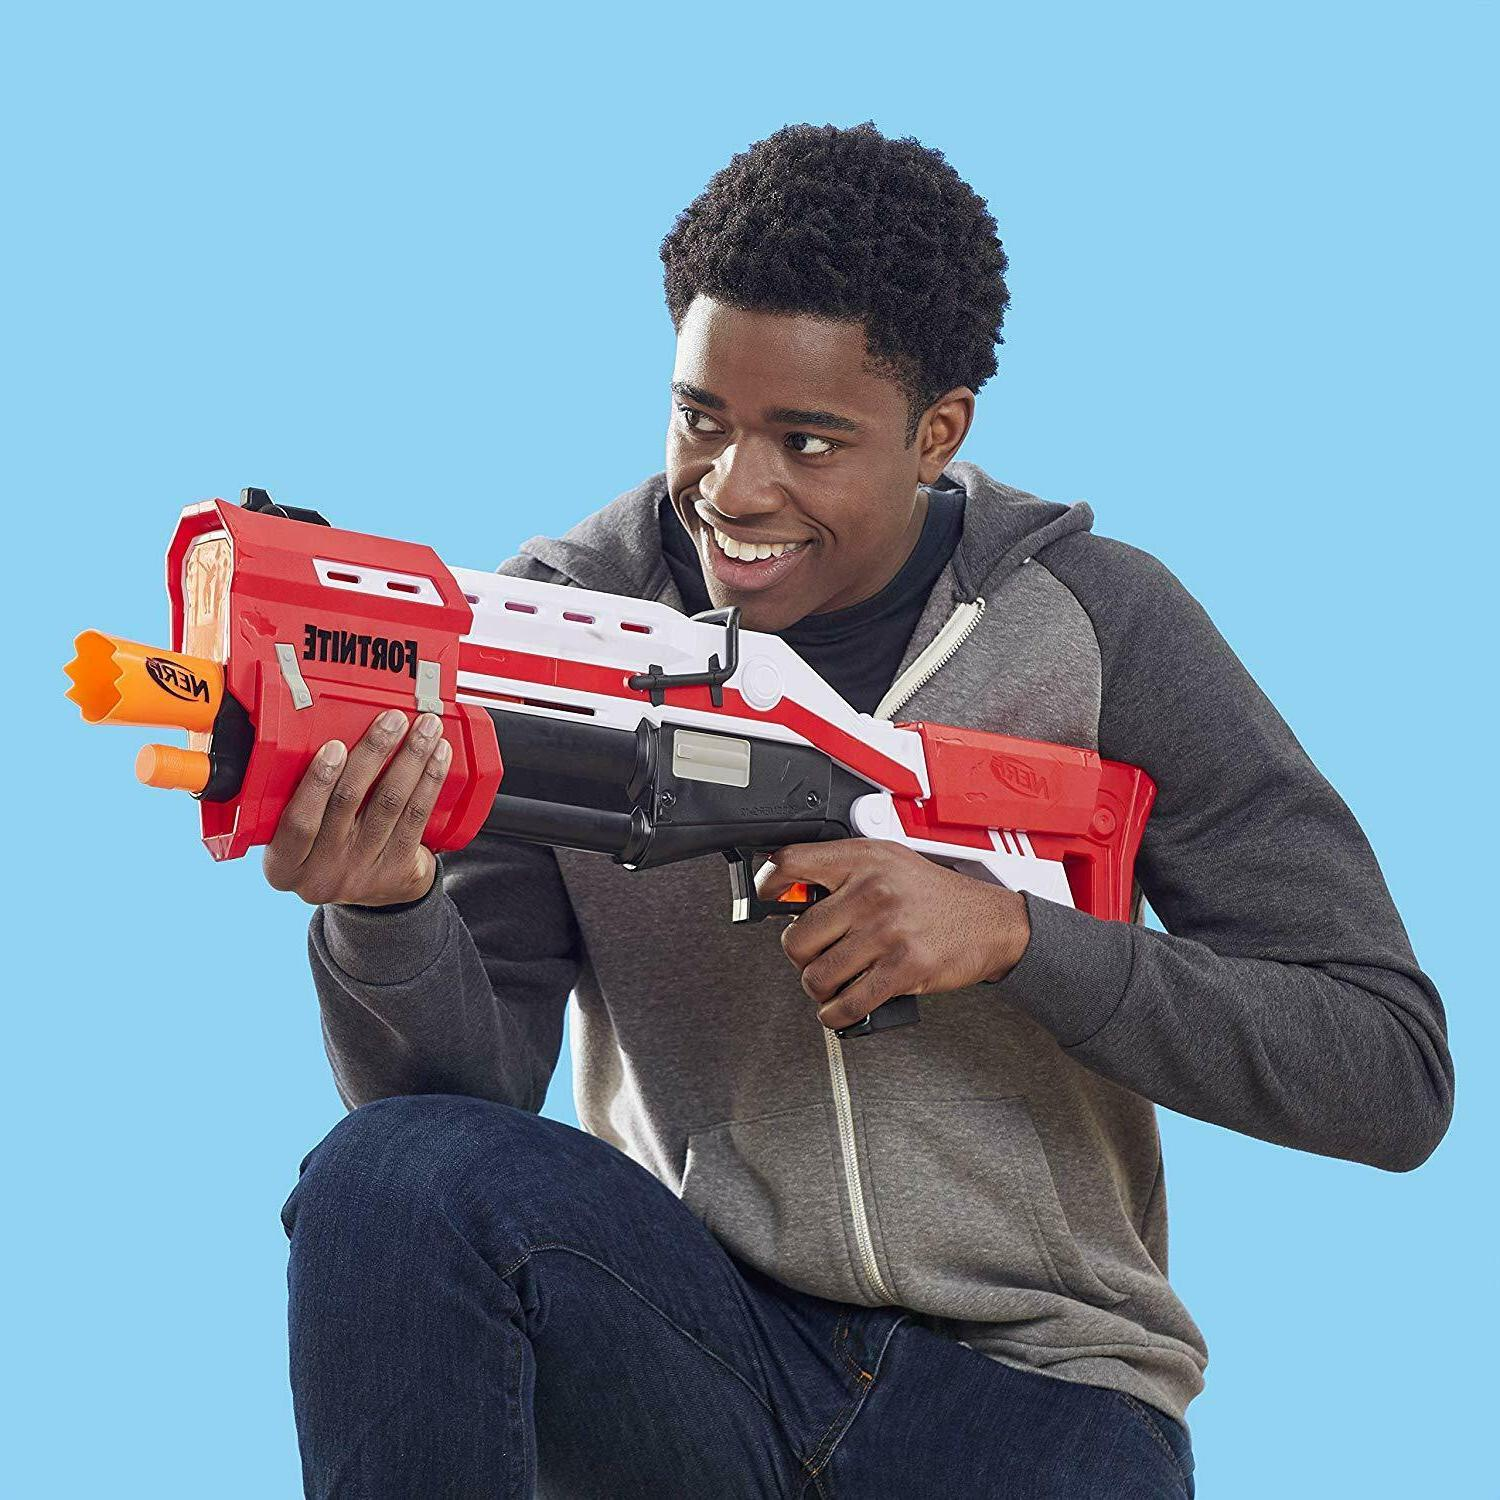 Fortnite Nerf Guns For Boys Guns Girls Nerf Fortnite